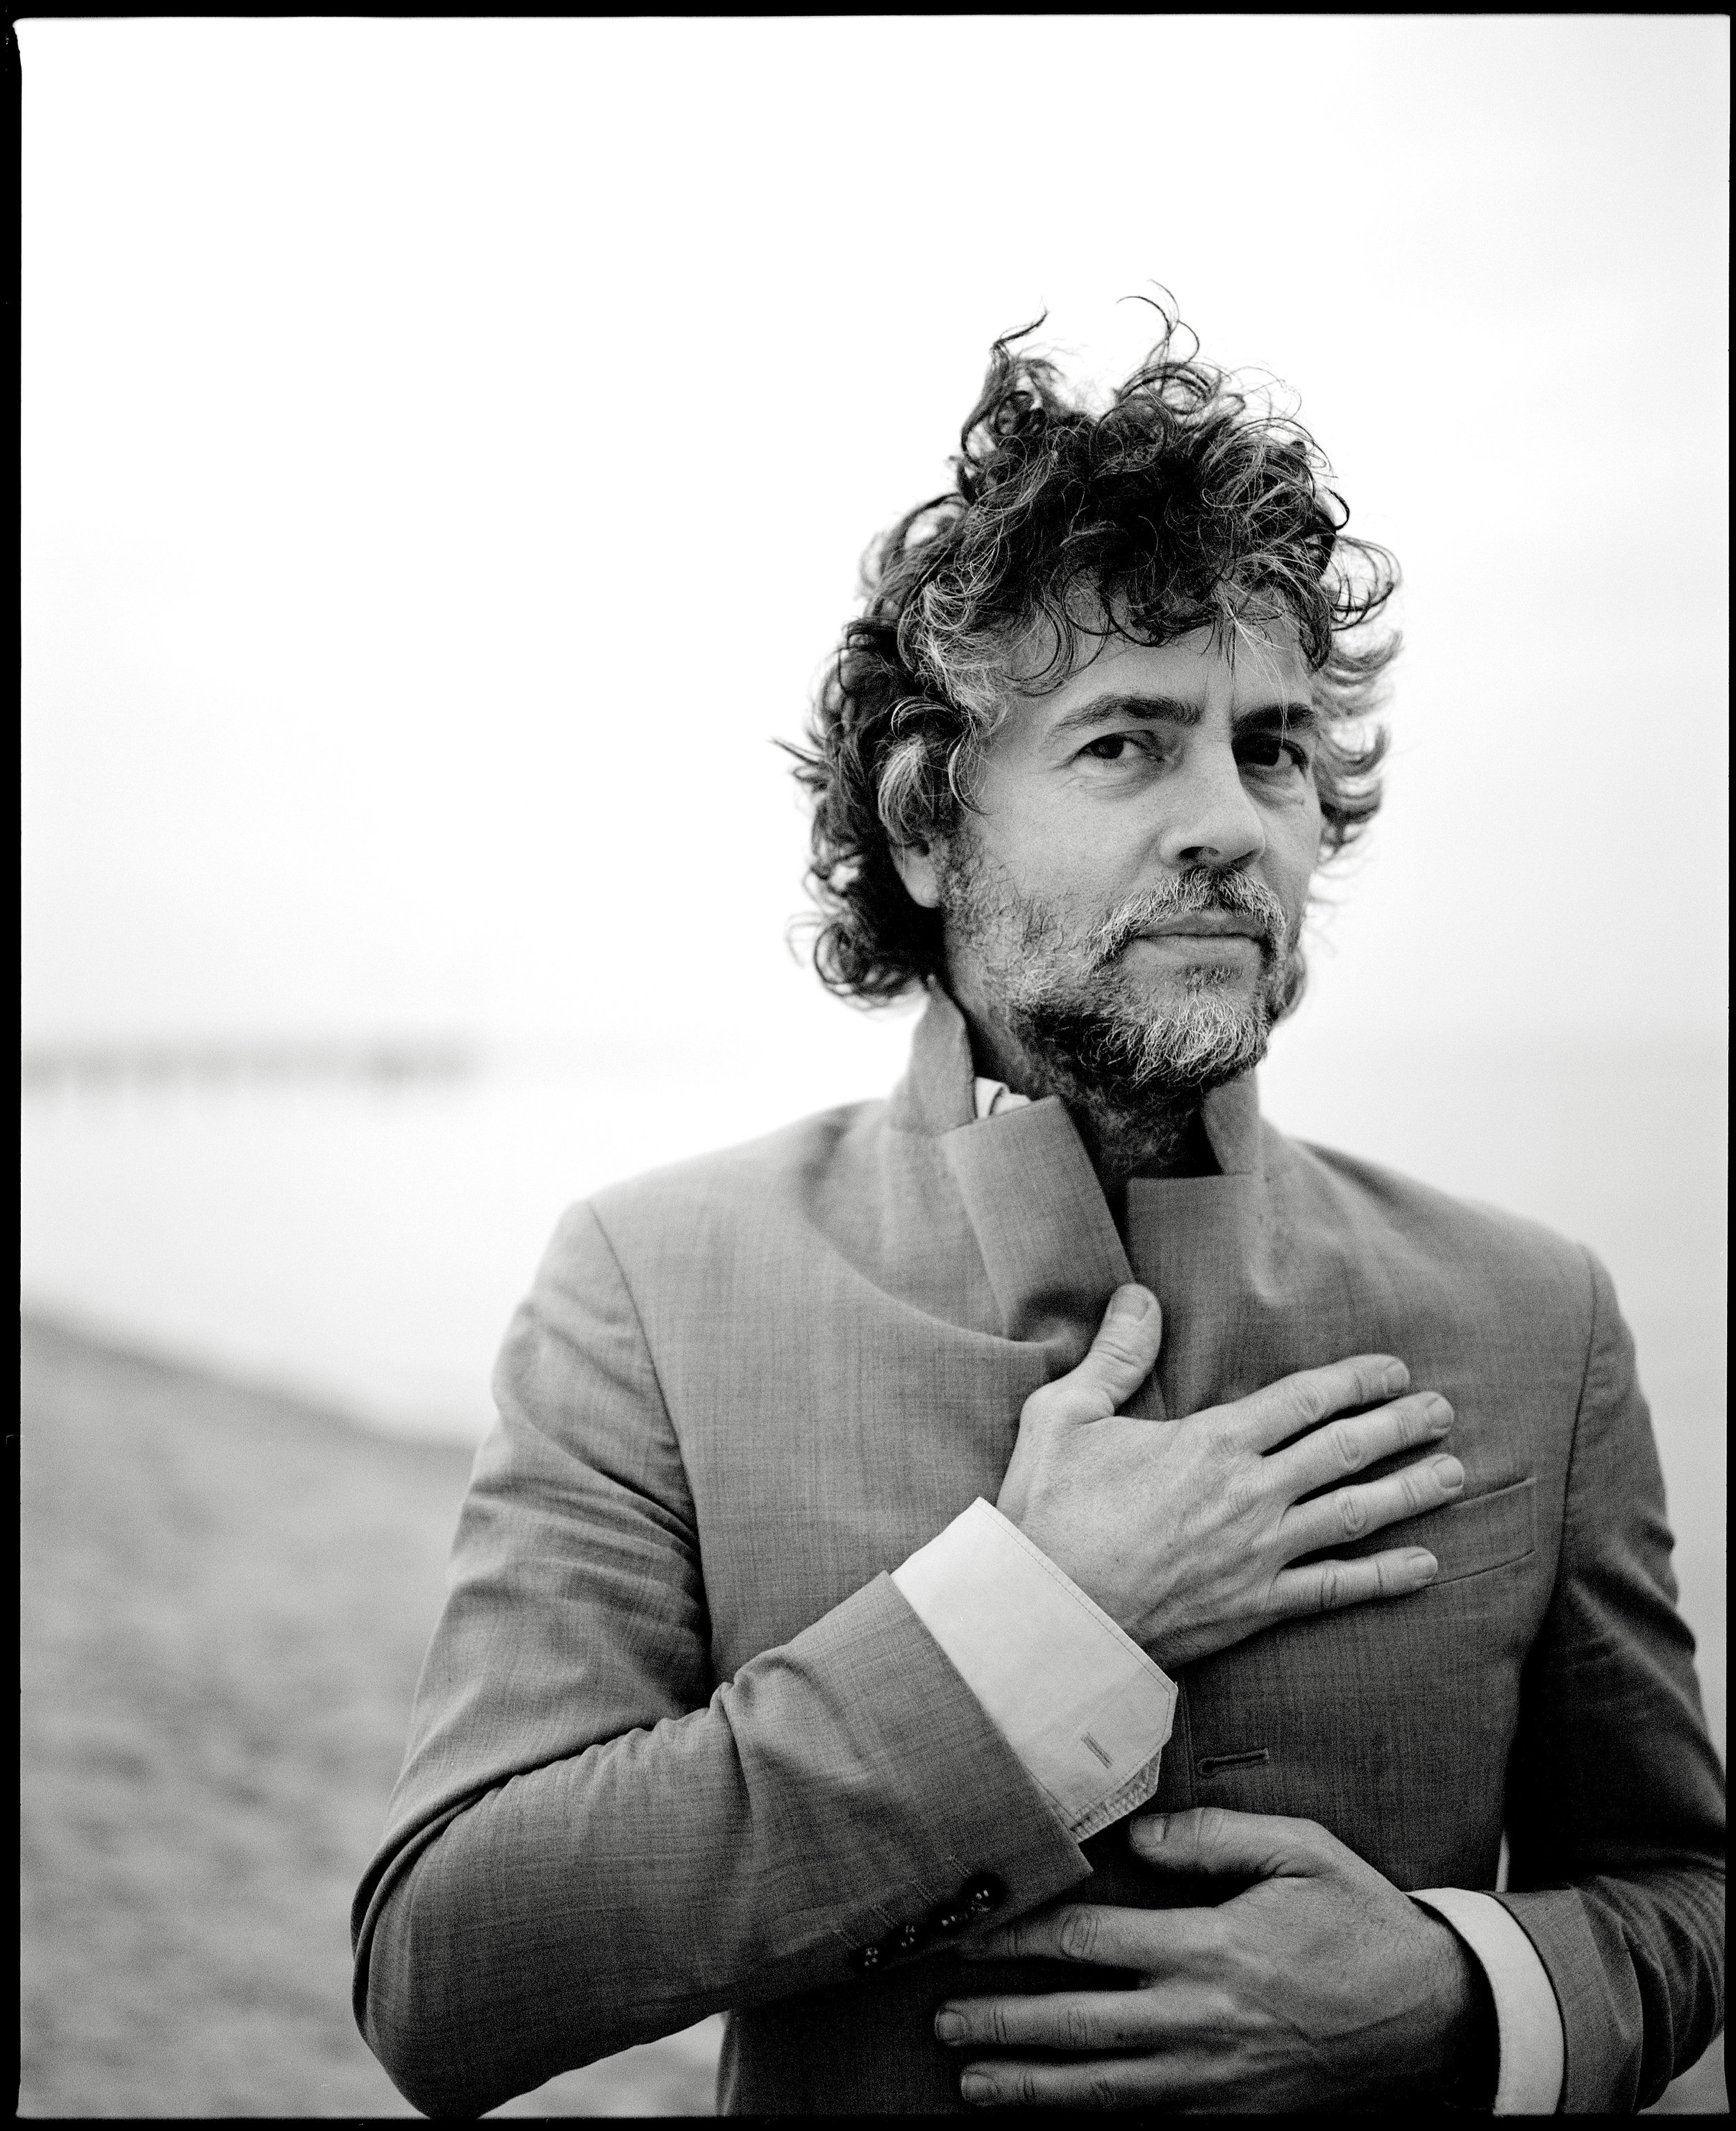 Wayne Coyne / The Flaming Lips